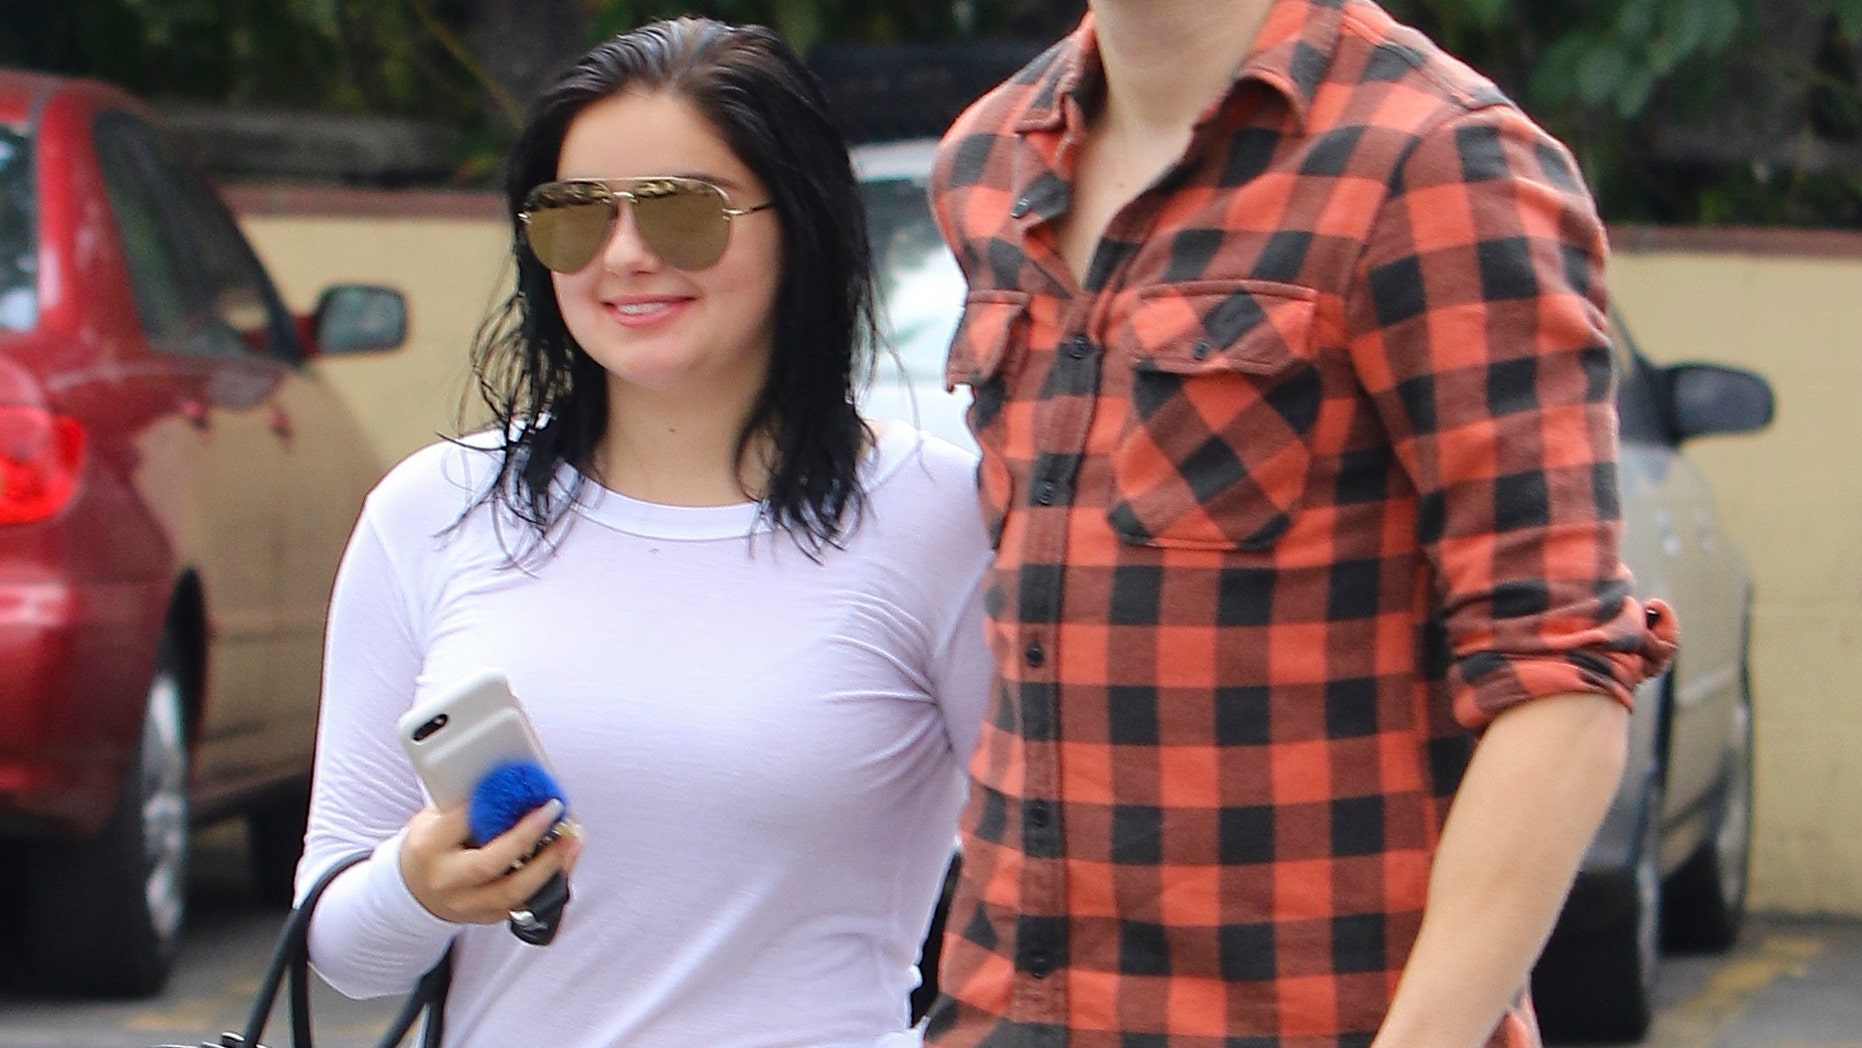 """Ariel Winter's lattest flame is 11 years older than the """"Modern Family"""" star. Winter, 18, is dating fellow actor Levi Meaden, 29."""